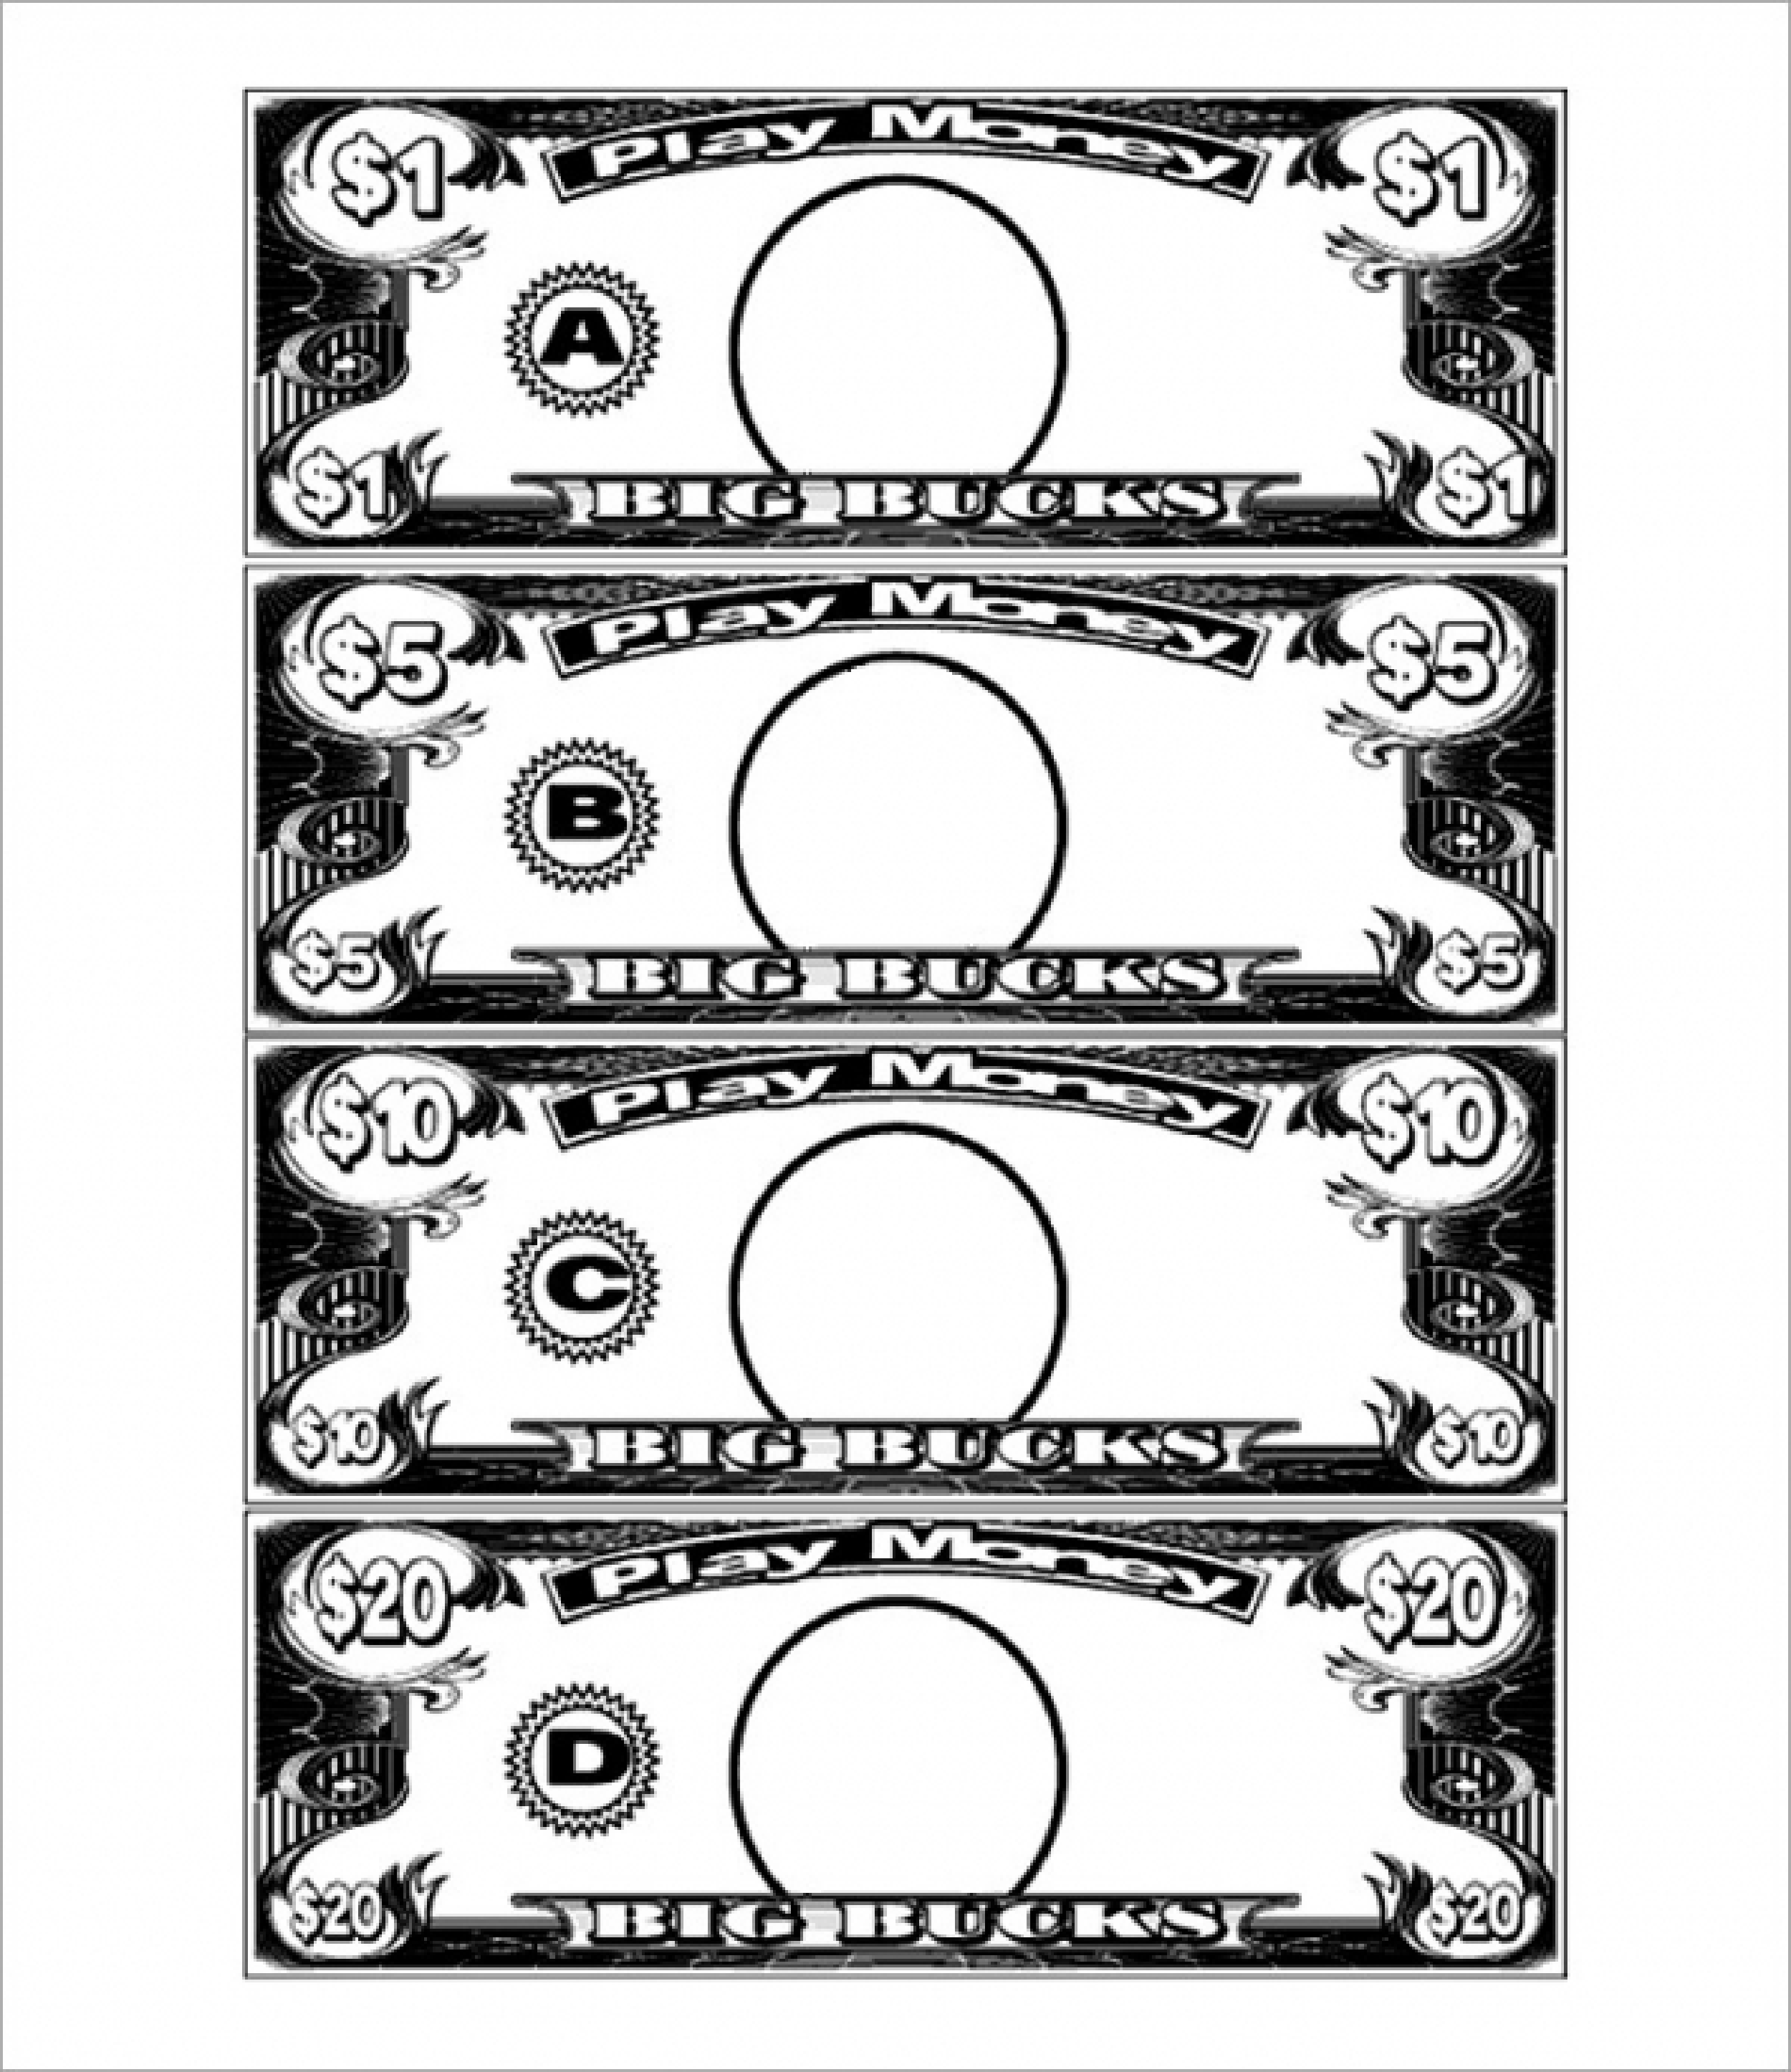 photograph regarding Play Money Template named 10 Pounds Enjoy Financial Template - Wanting for printable enjoy